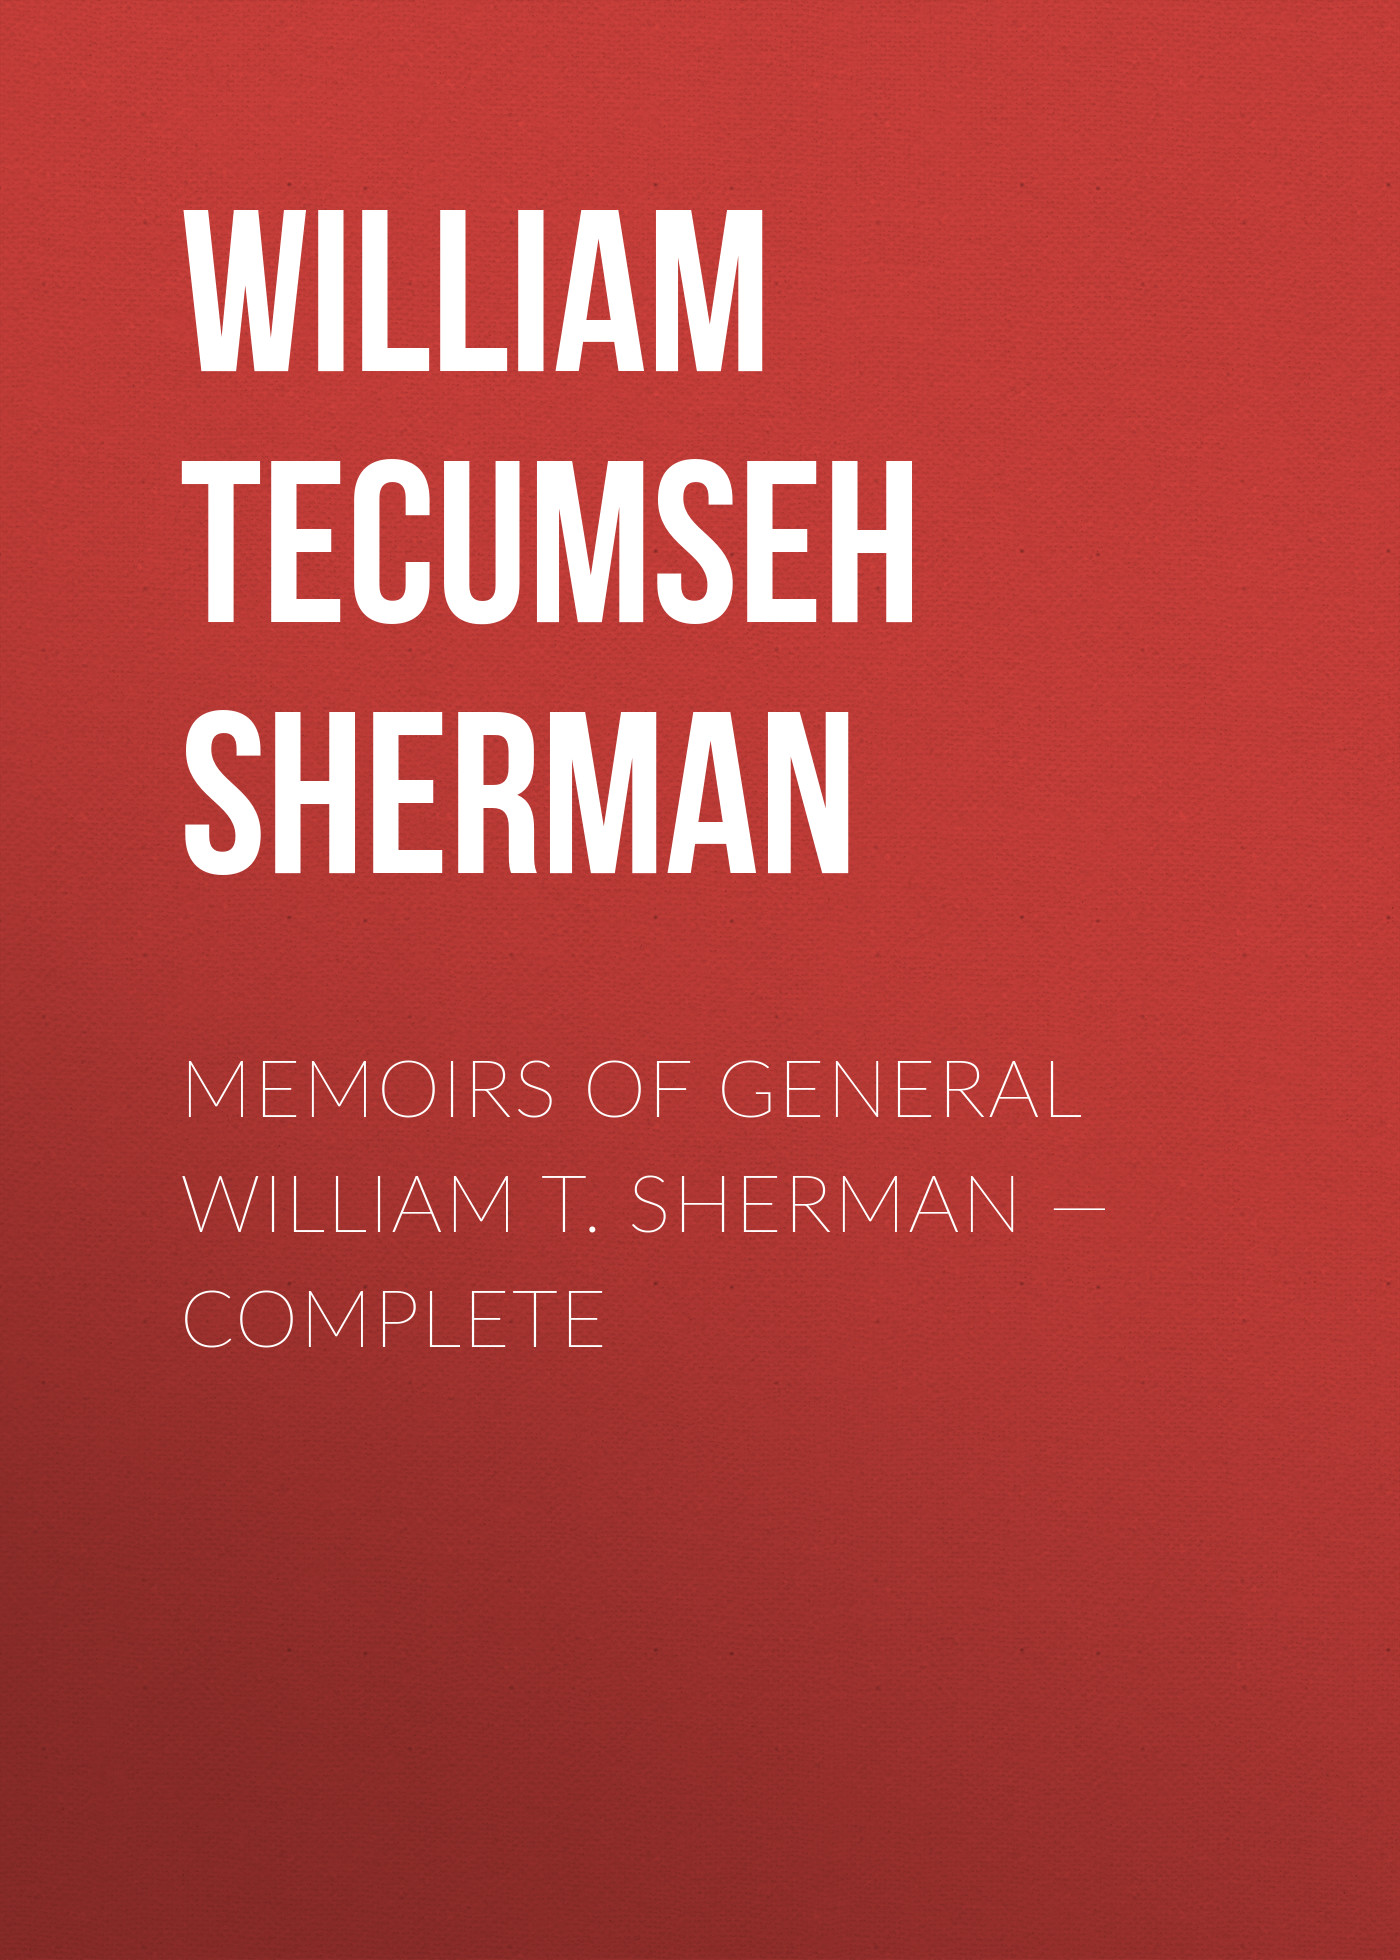 William Tecumseh Sherman Memoirs of General William T. Sherman — Complete frost william dodge a text book of general bacteriology